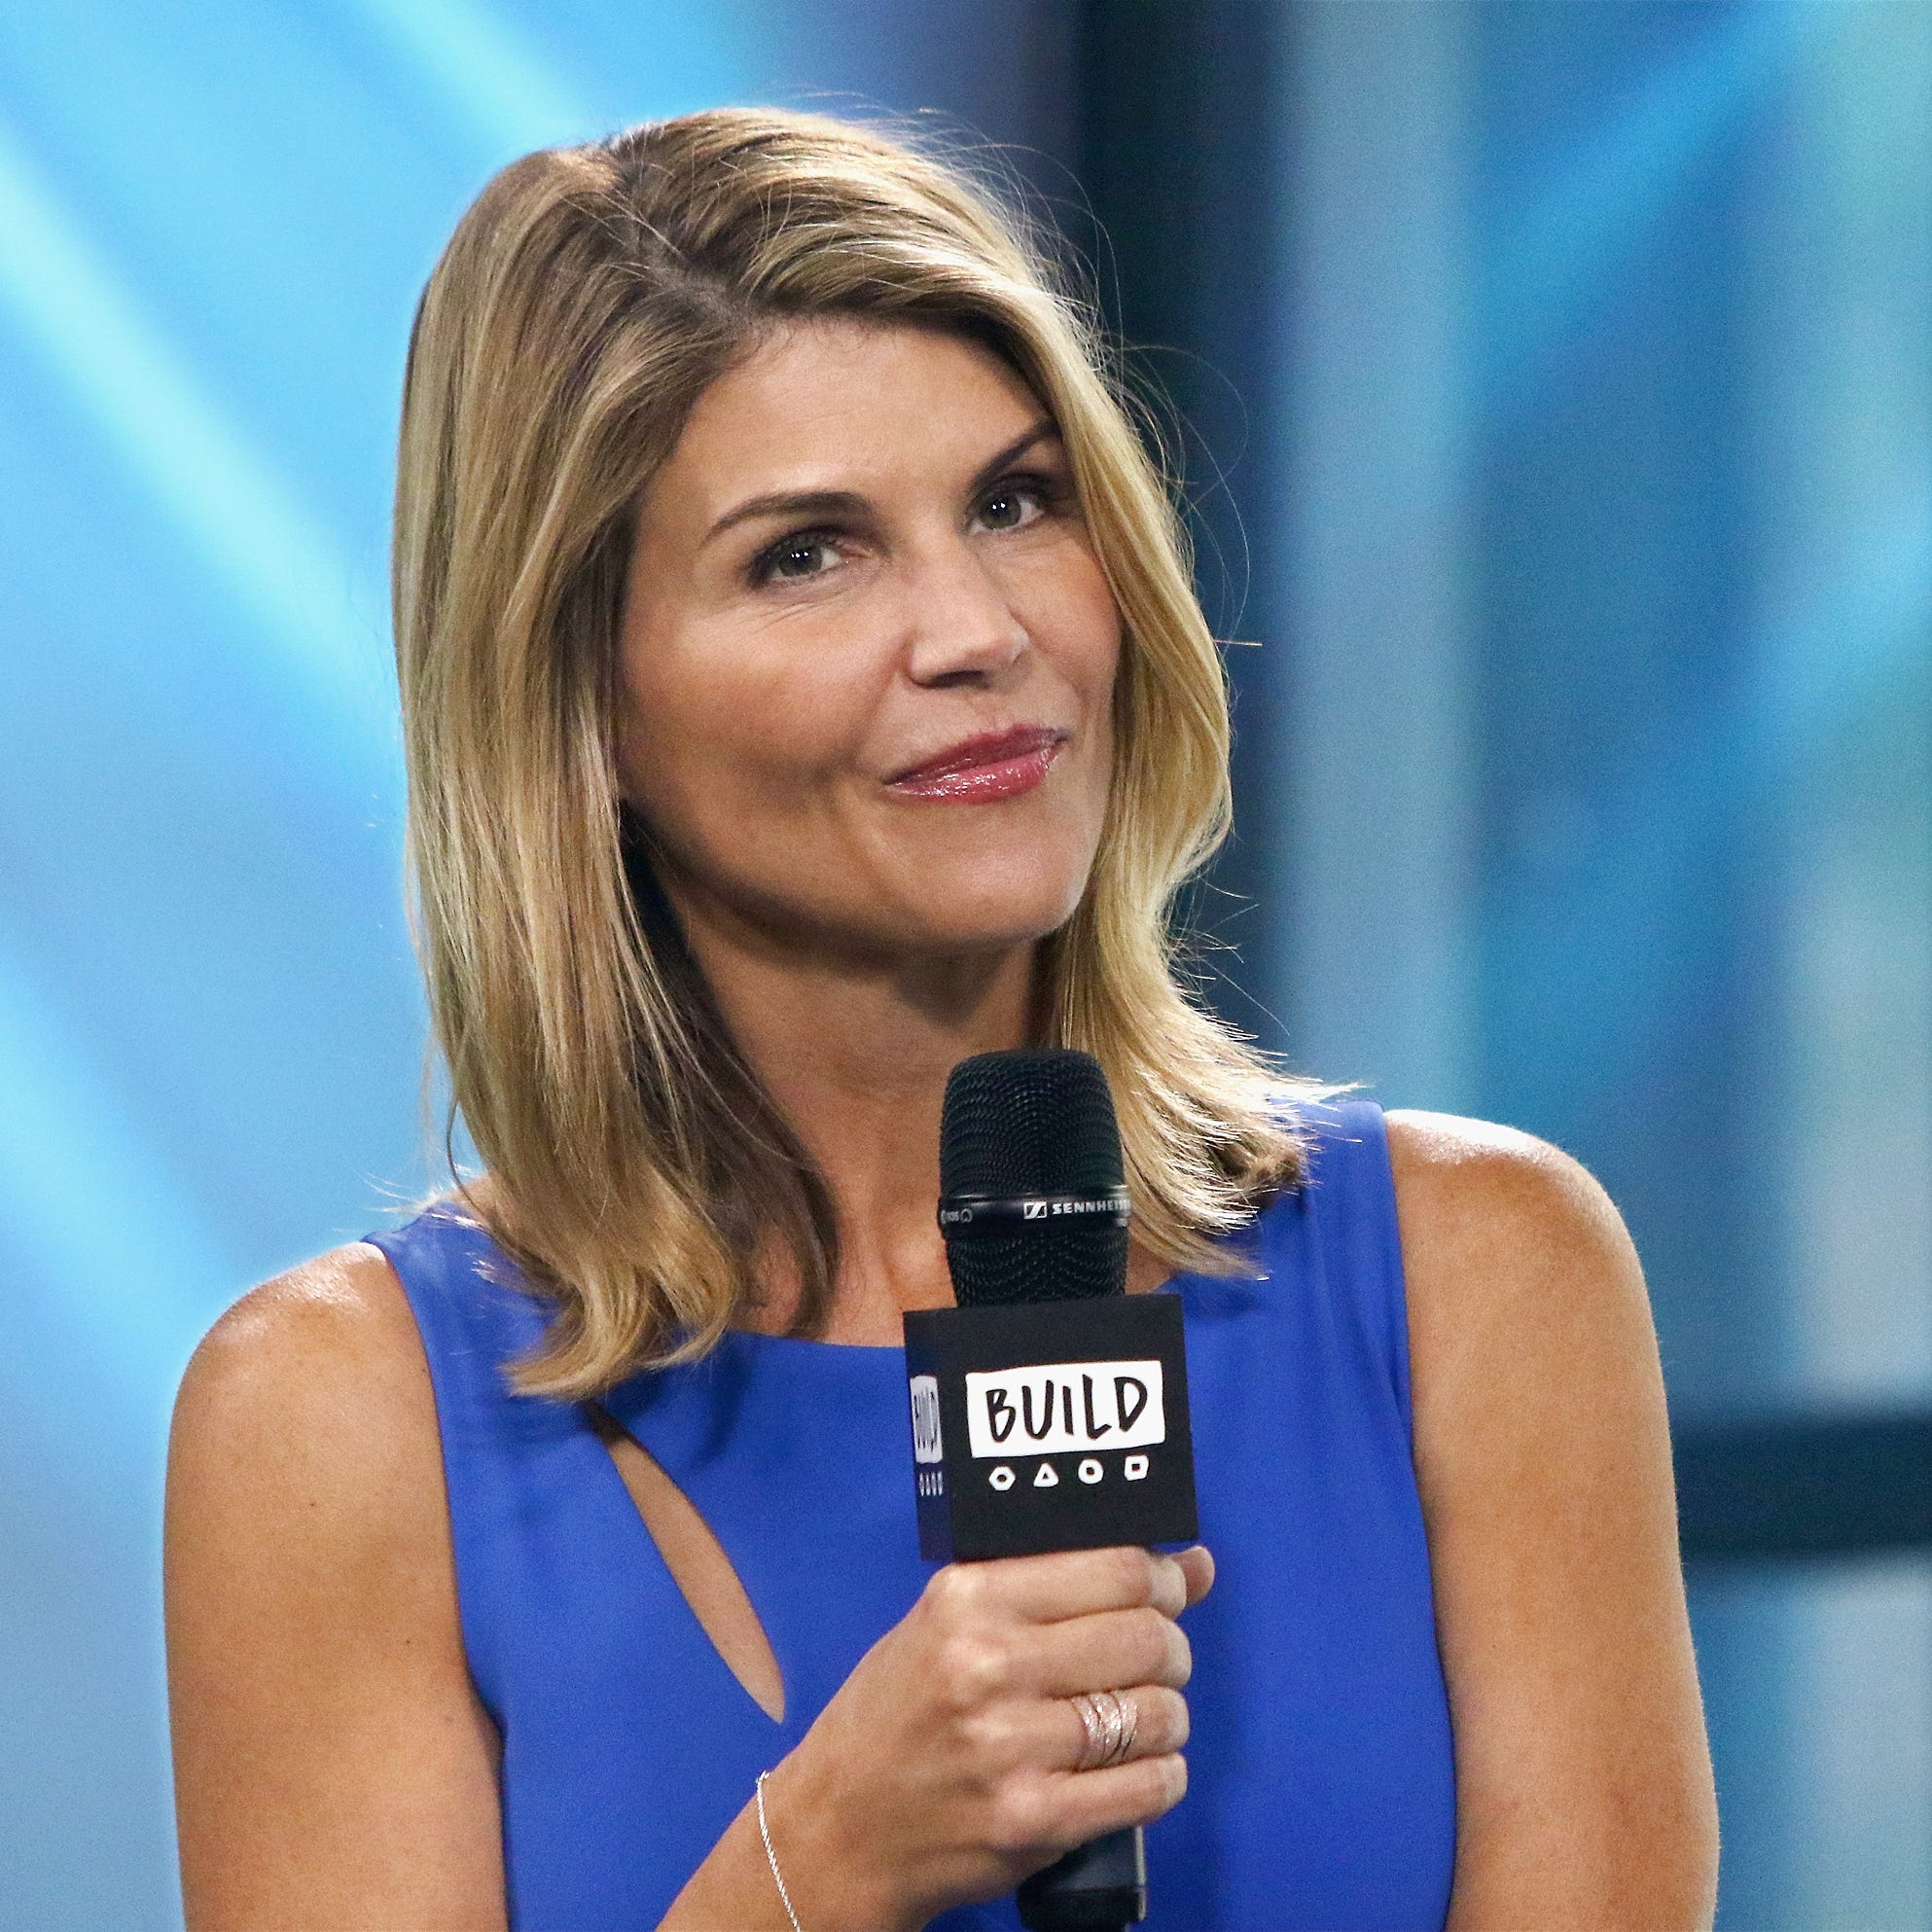 """Actress Lori Loughlin attends Build to discuss the show """"Fuller House"""" at Build Studio on August 3, 2017 in New York City."""